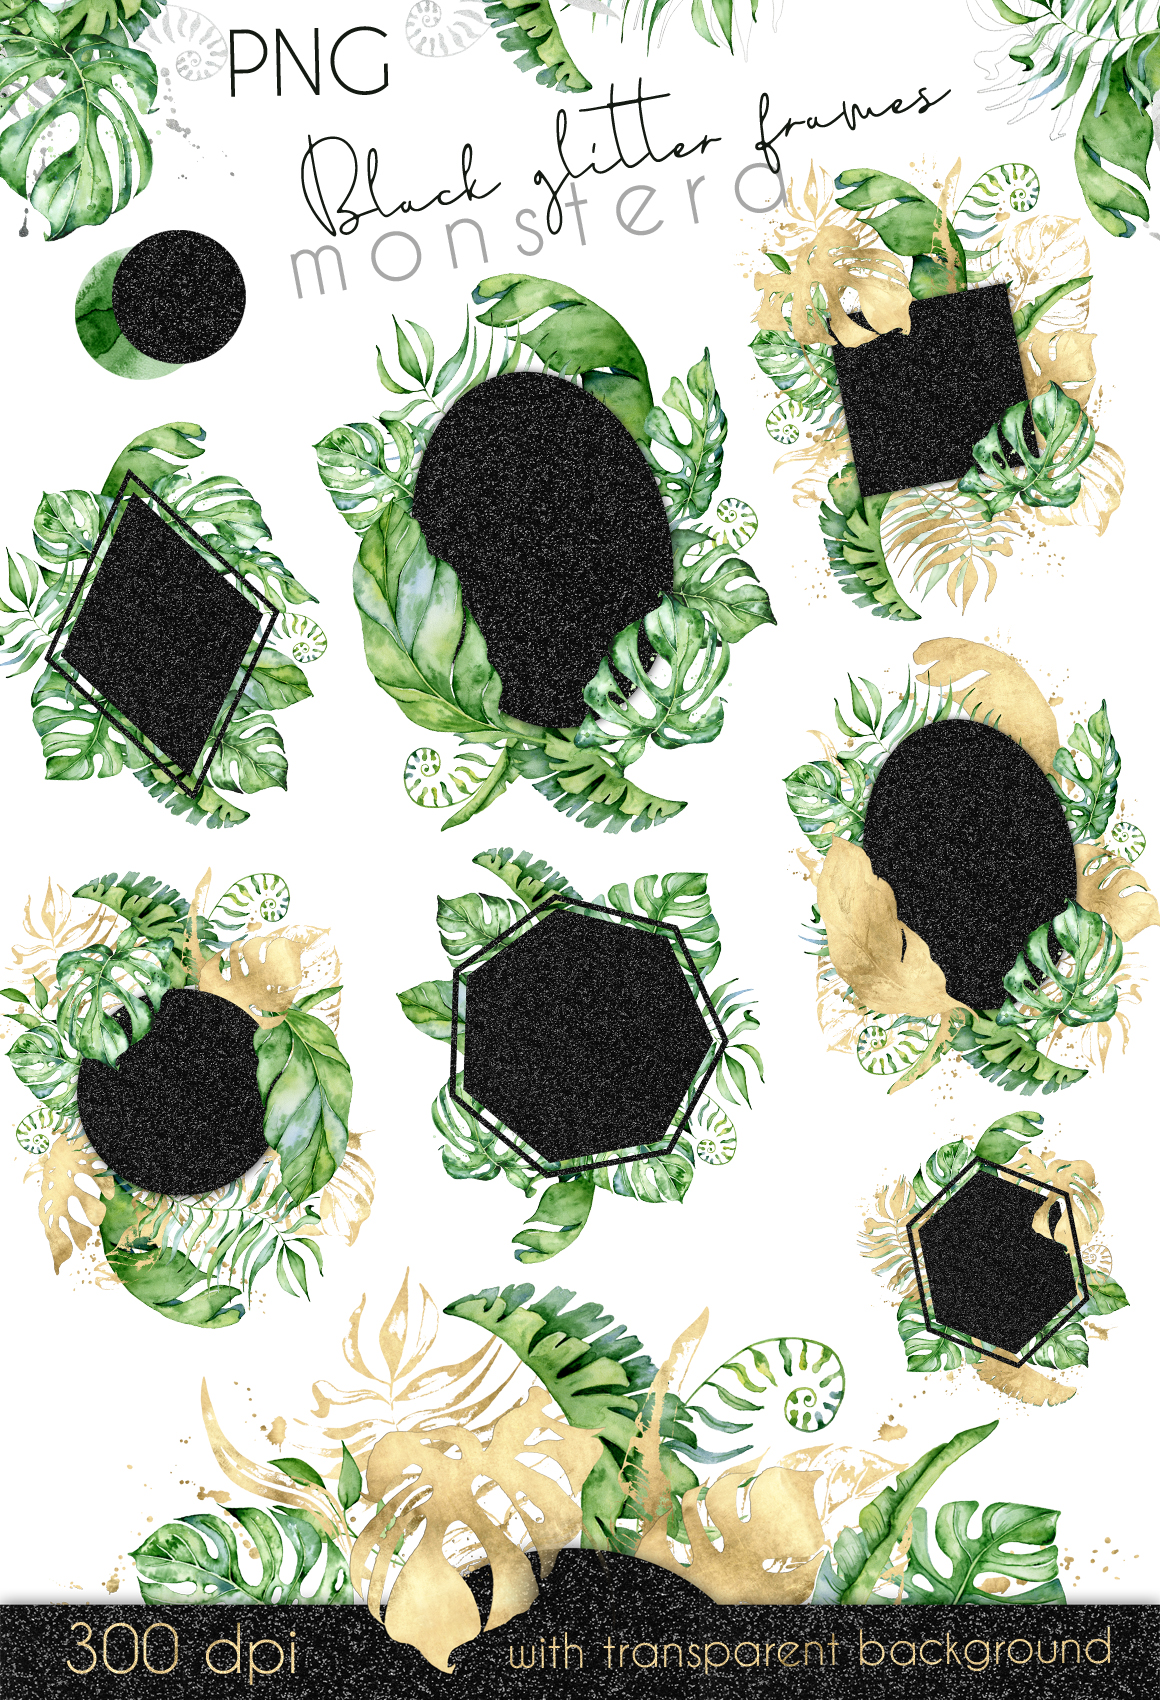 44 Tropical watercolor Frames - Gold, Silver, Black glitter